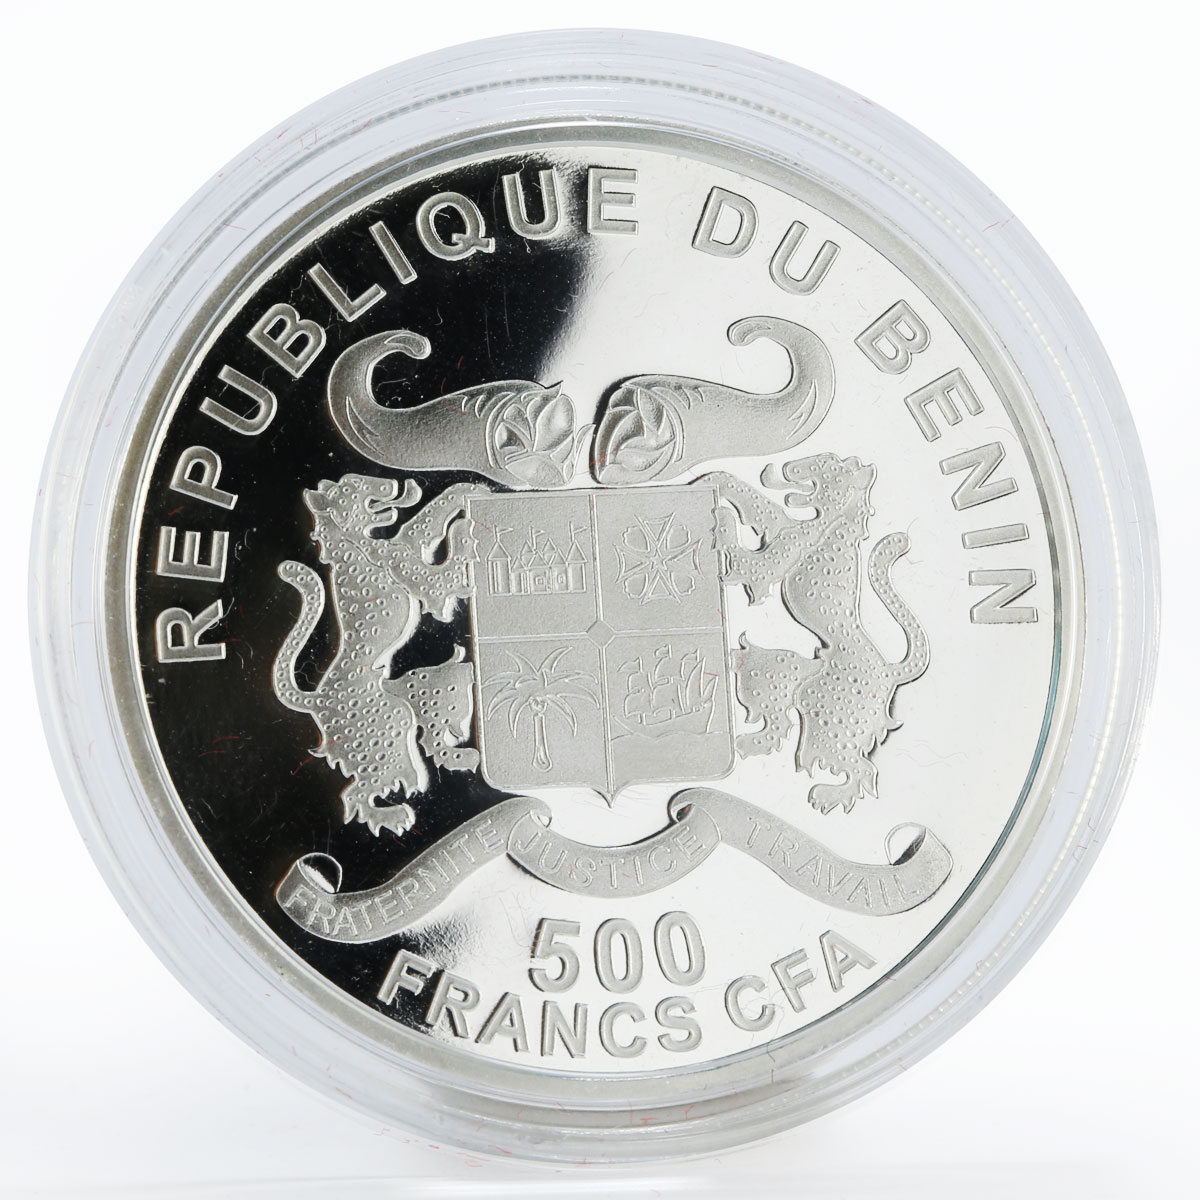 Benin 500 francs 85 Years of Vatican City State colored proof silver coin 2014